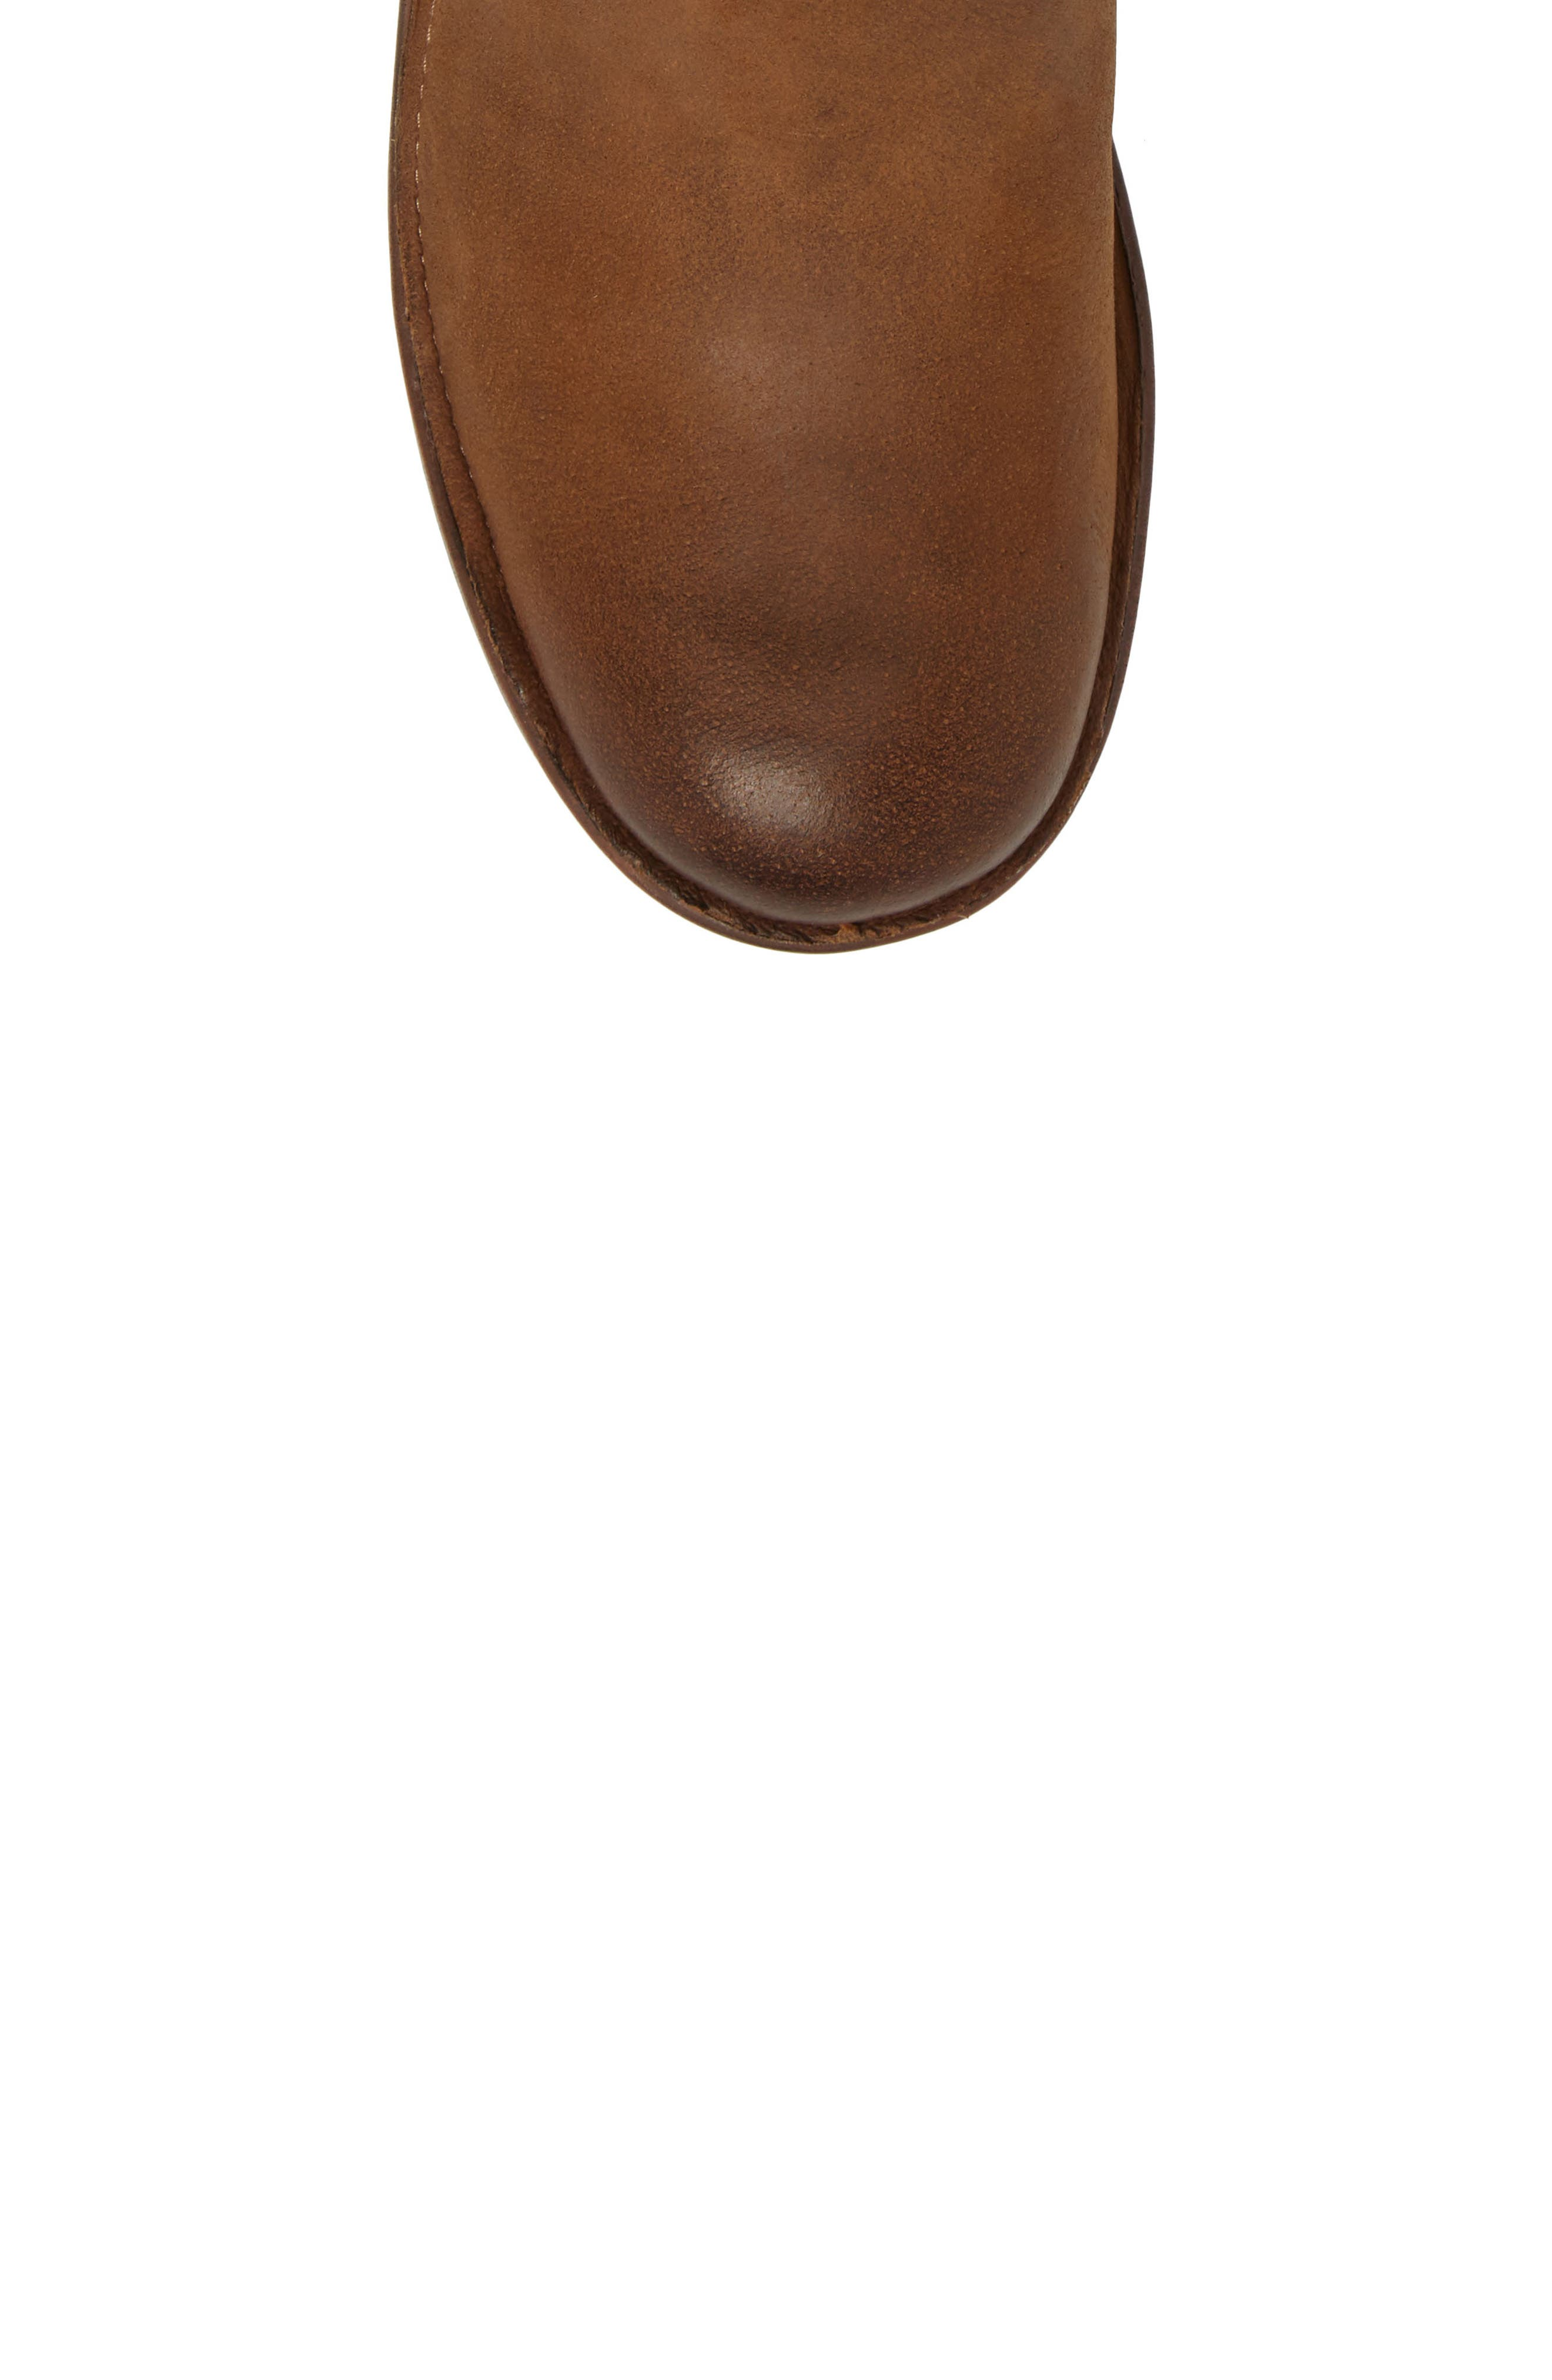 Reign Bootie,                             Alternate thumbnail 5, color,                             Dark Brown Leather